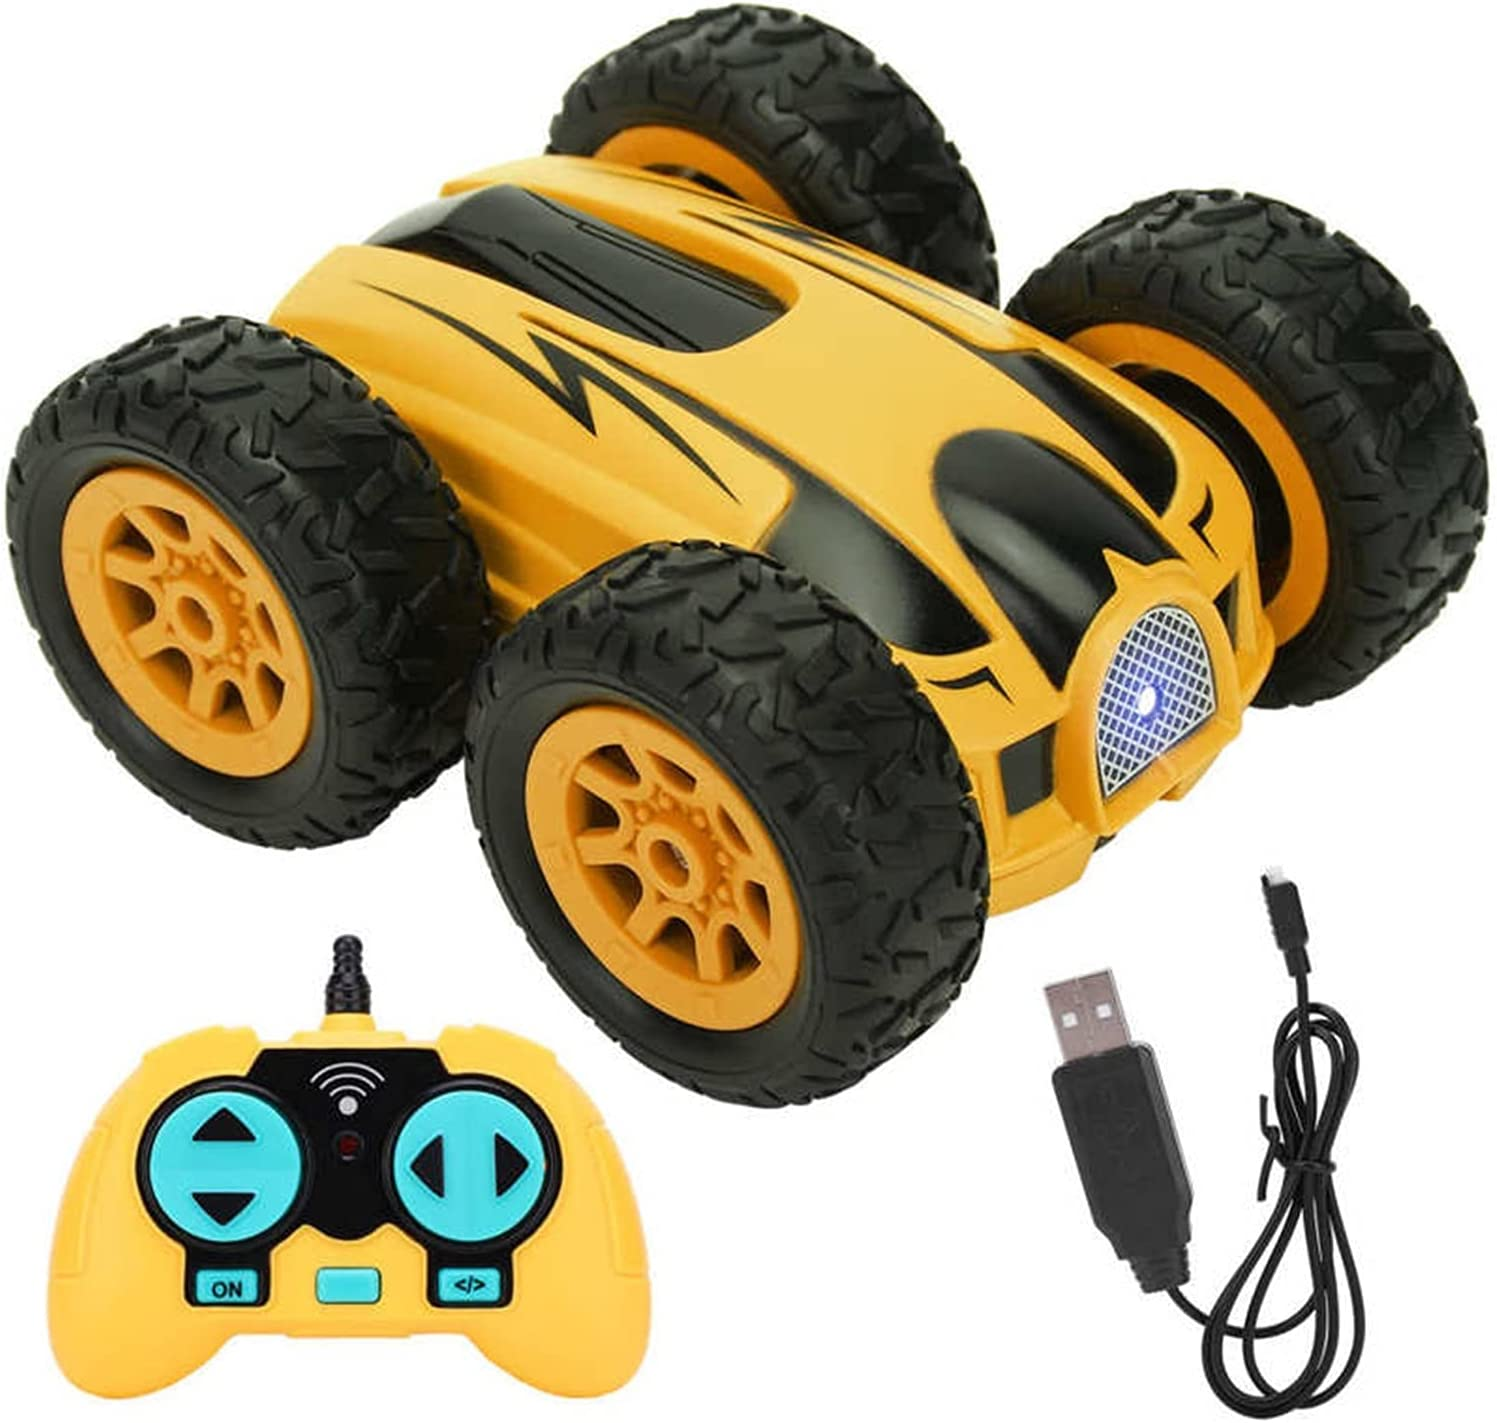 Blue Rose Wangweiming Mini RC Stunt Speed Overseas parallel import regular item Car San Diego Mall Double-S 2.4G High